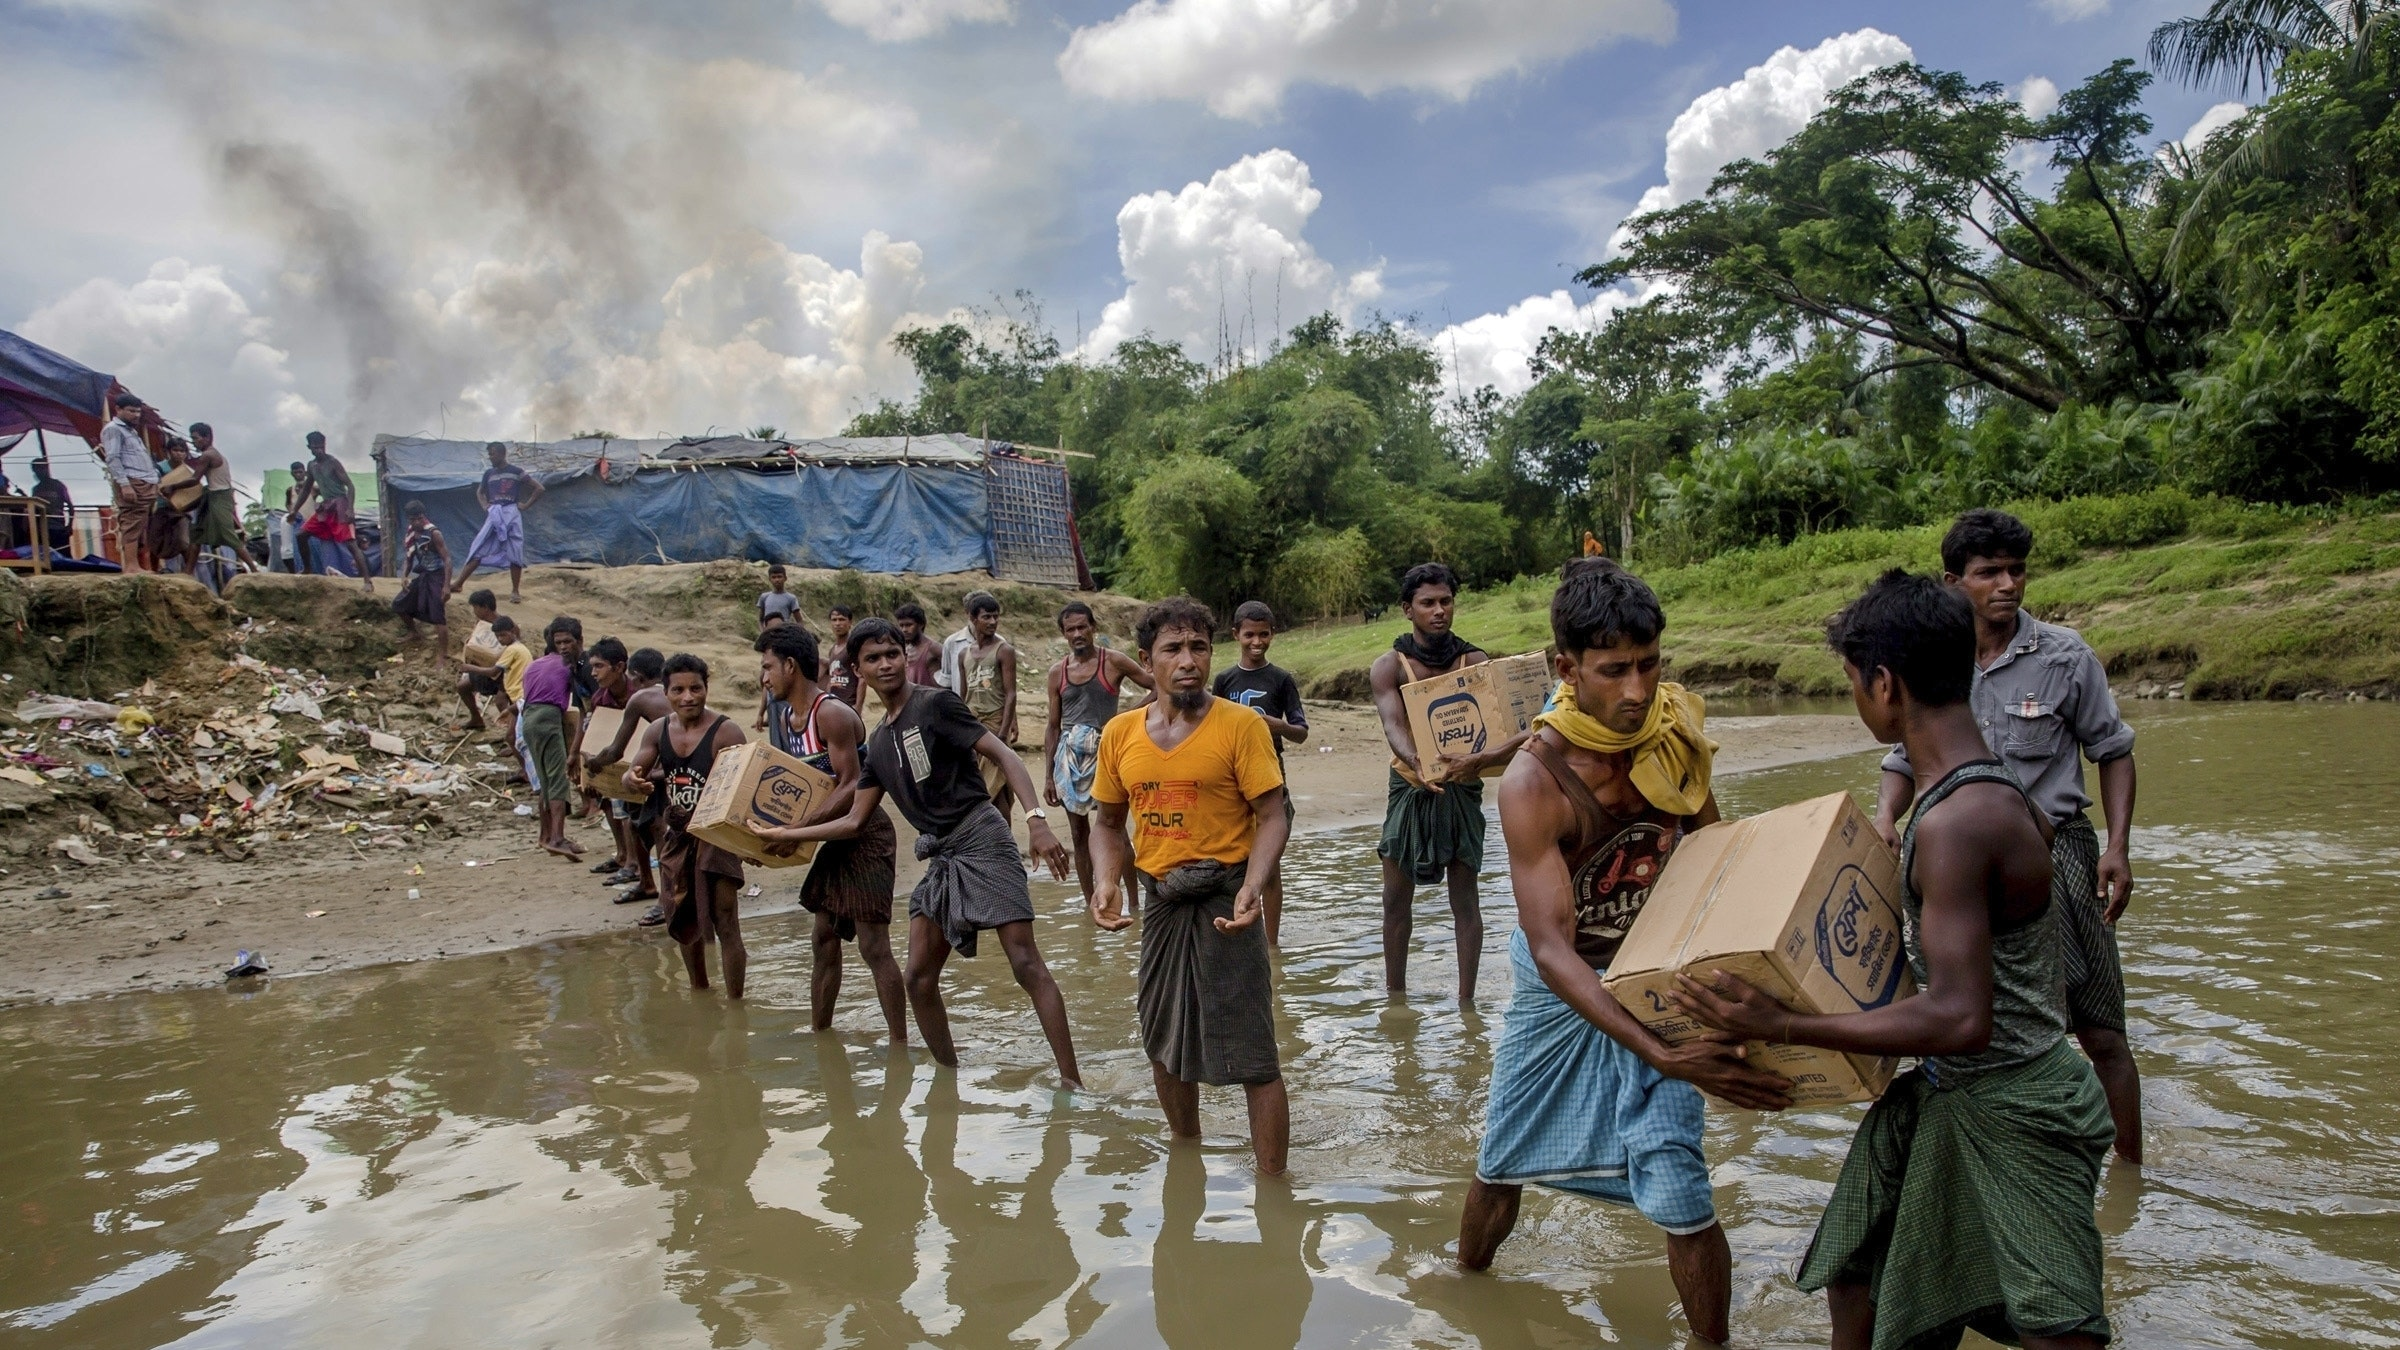 Myanmar Is Building Military Bases on Torched Rohingya Villages, Rights Group Says